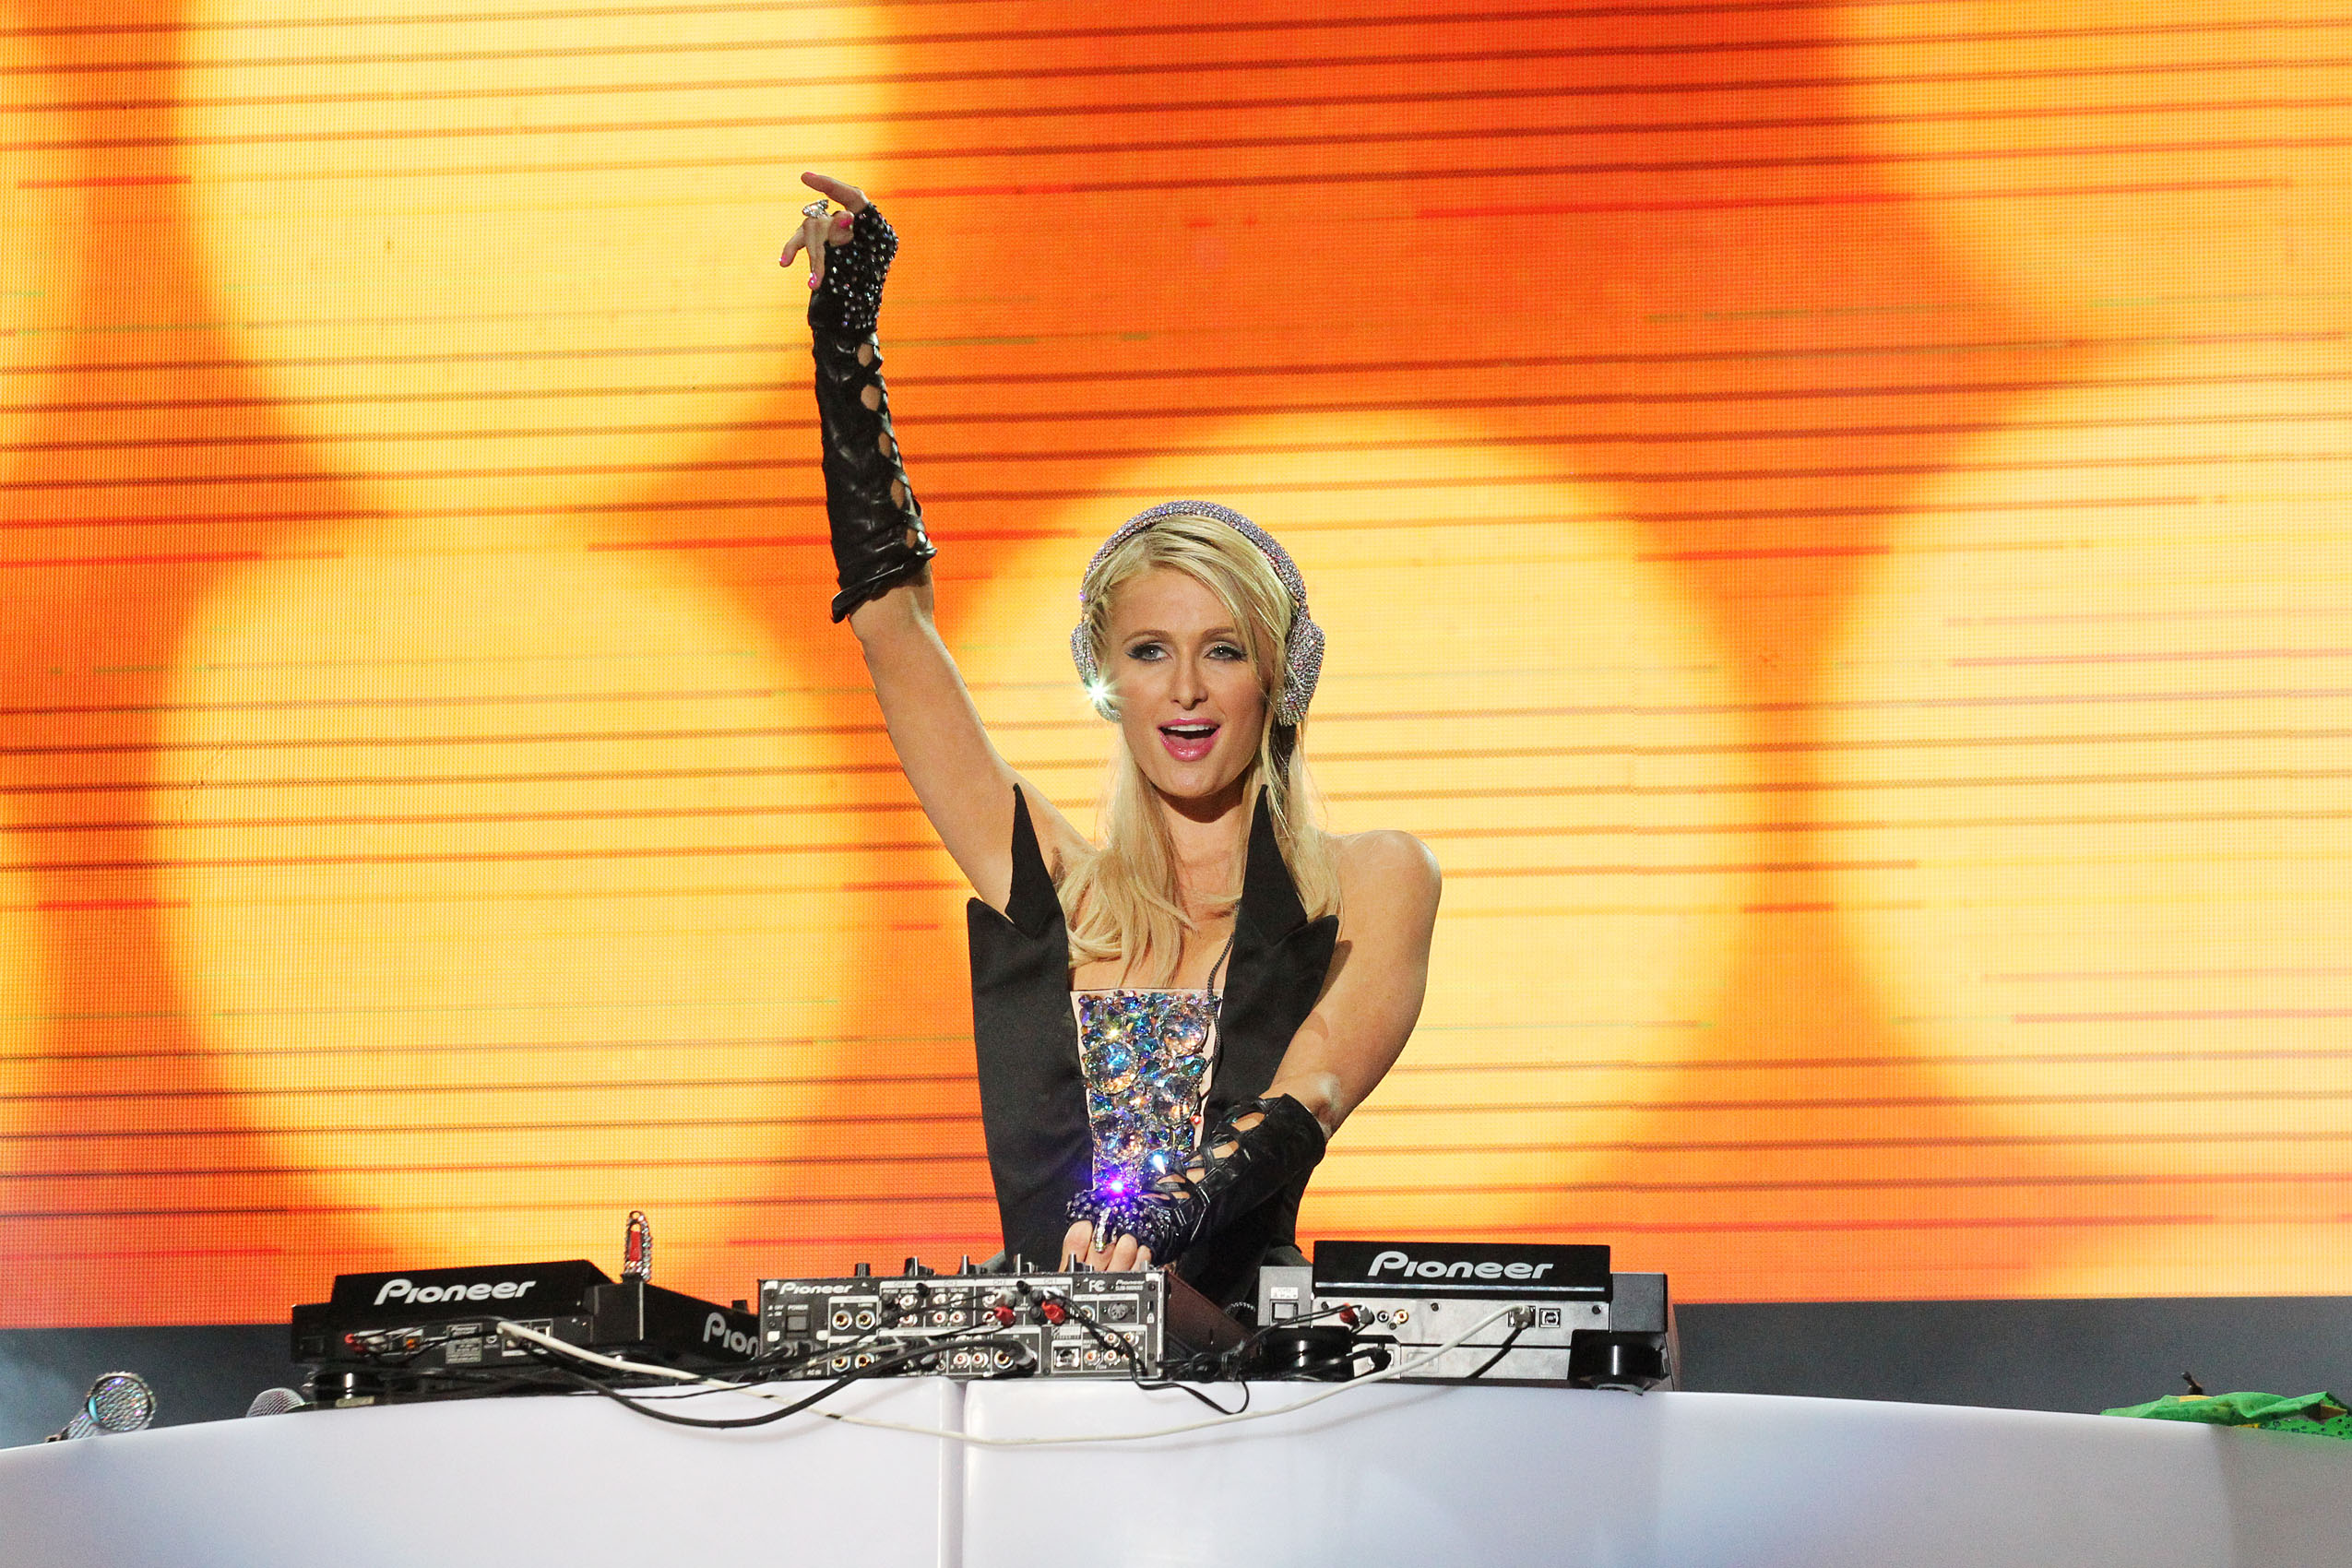 Paris Hilton performed her DJ debut at the Pop Music Festival in Sao Paulo, Brazil in front of thousands of ecstatic fans